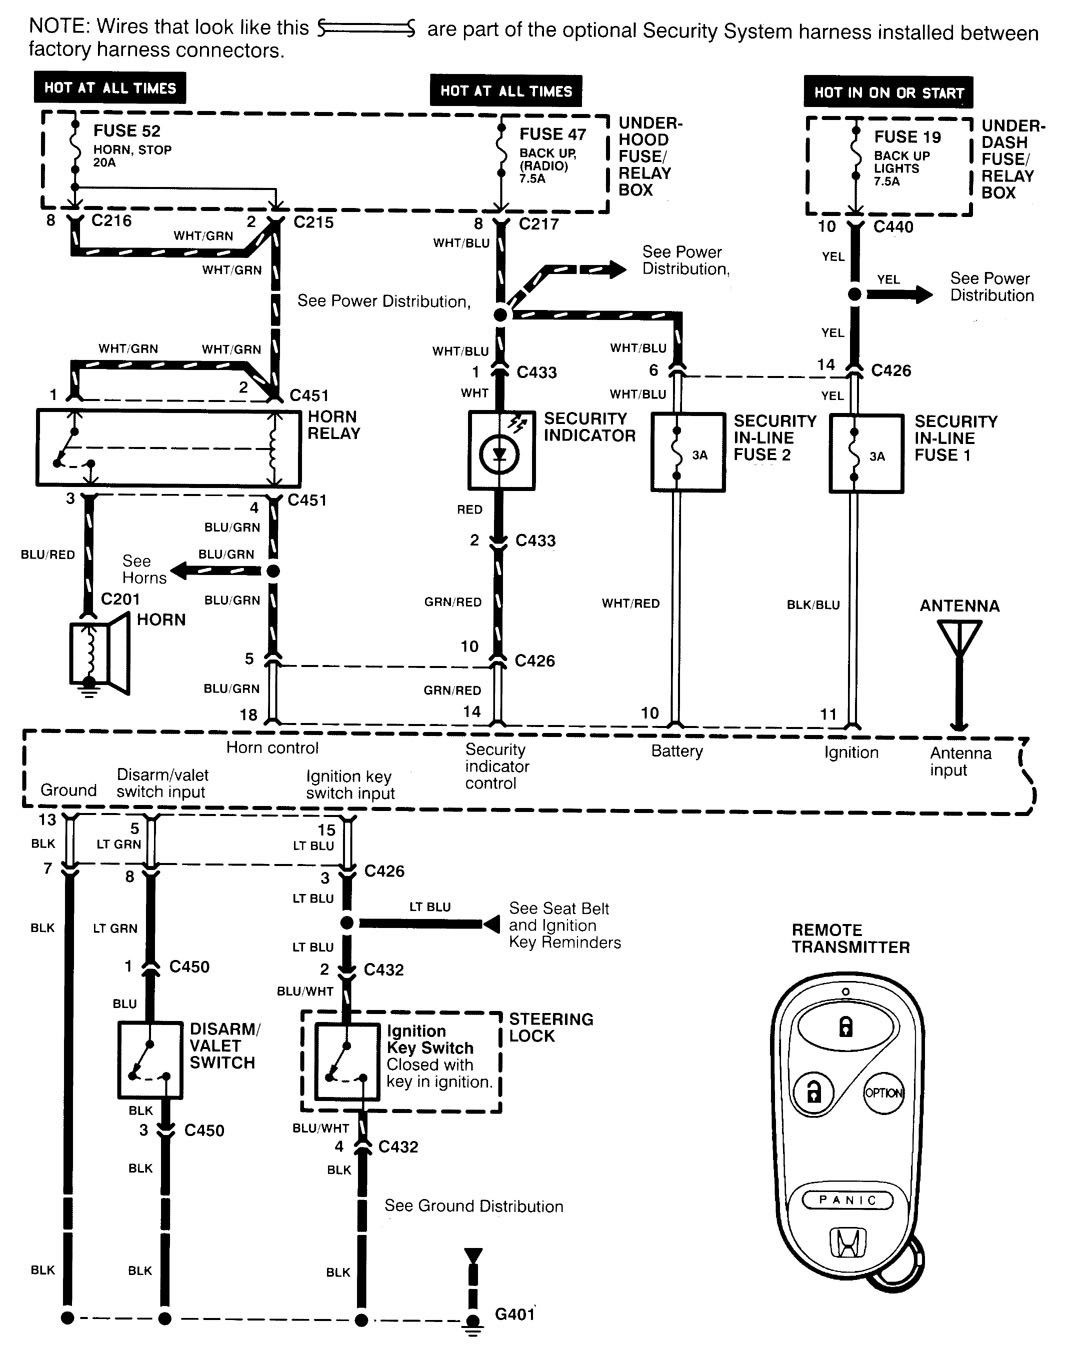 95 Honda Civic Distributor Wiring Diagram : Acura integra ignition switch wiring diagram diagrams